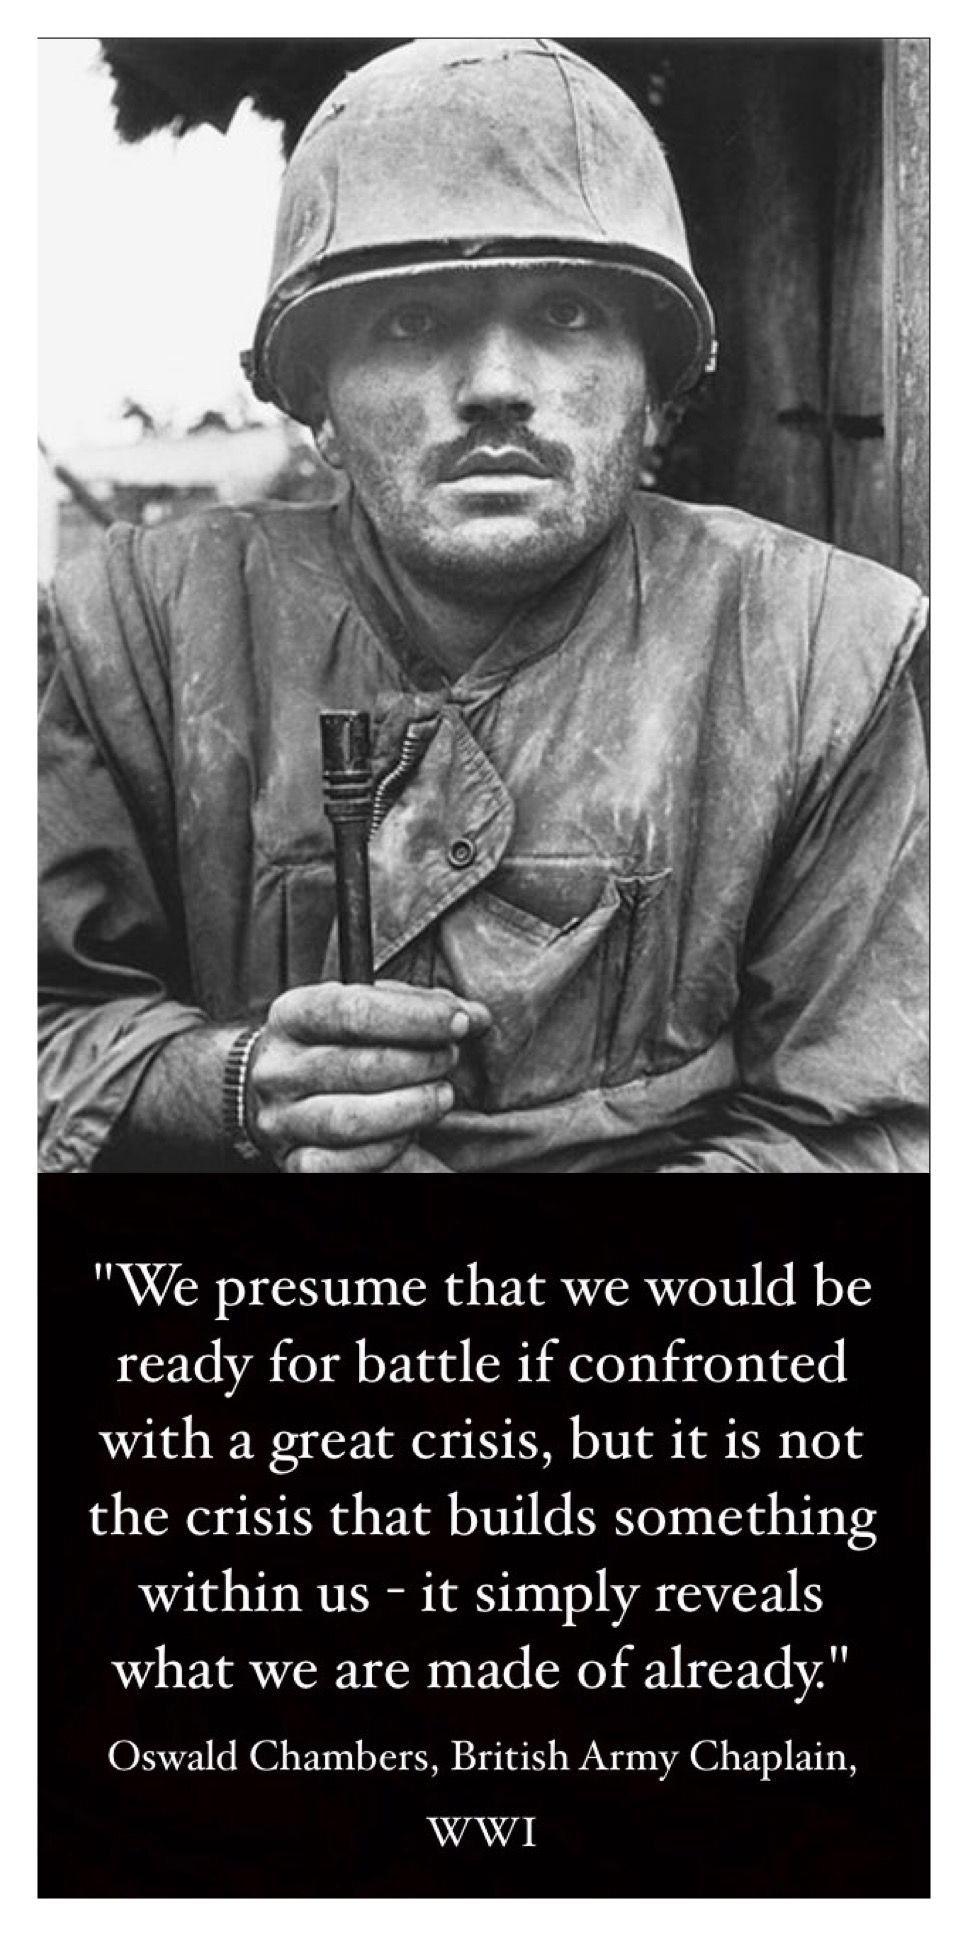 """We presume that we would be ready for battle if confronted with a great crisis, but it is not the crisis that builds something within ust simply reveals what we are made of already."" - Oswald Chambers, British Army Chaplain, WWI"